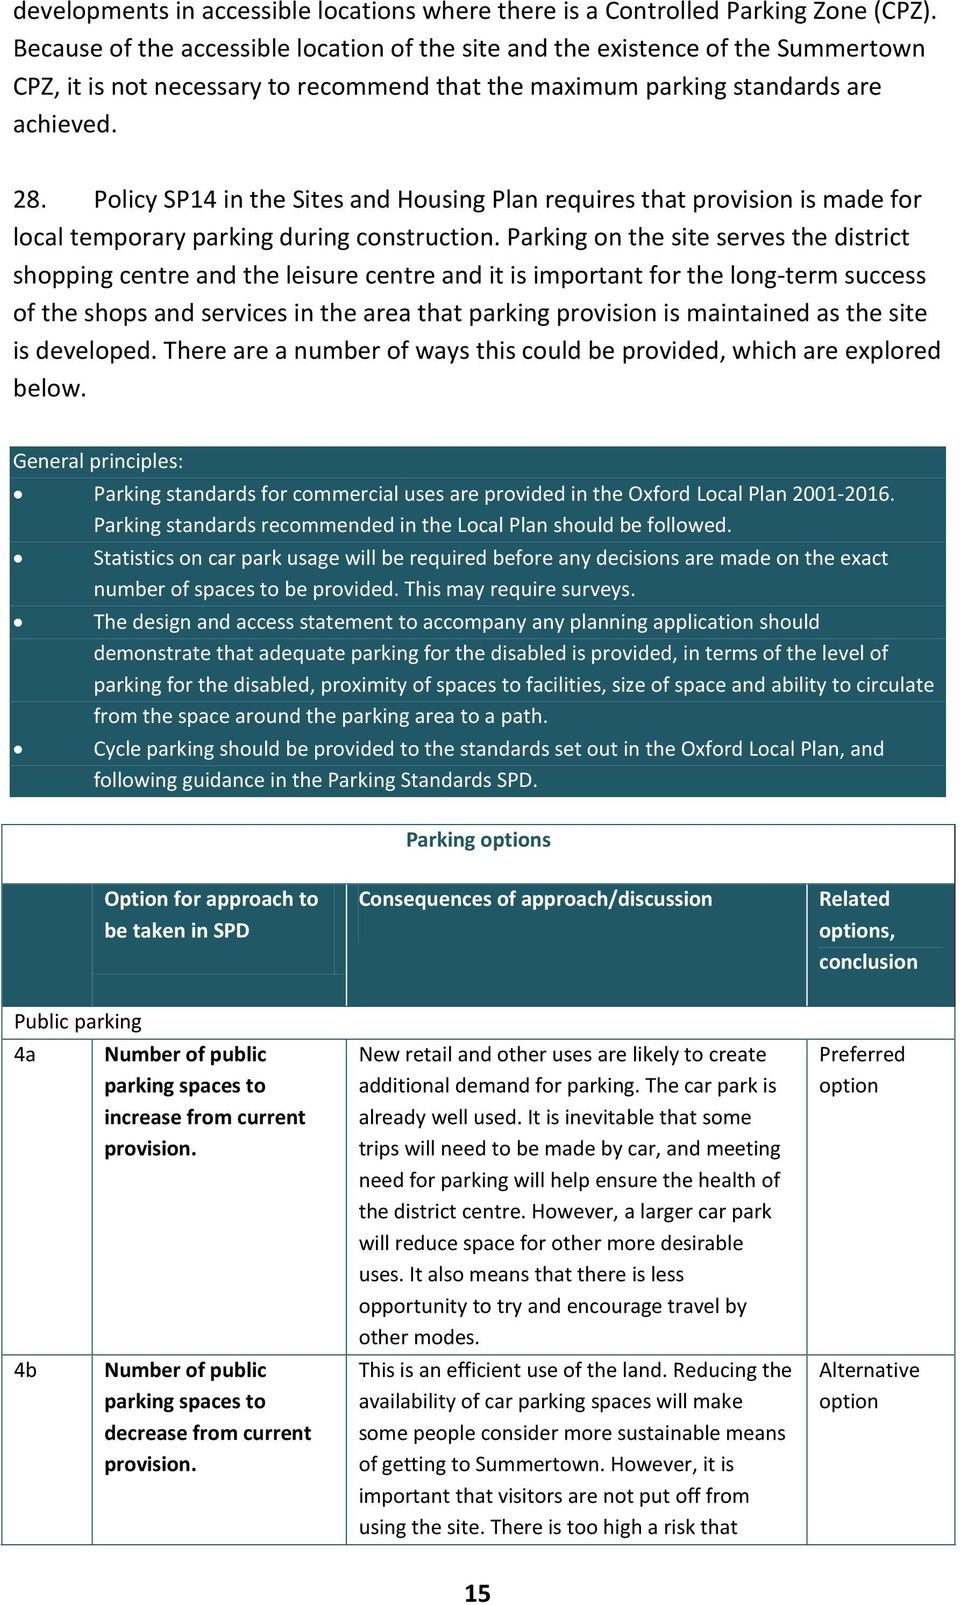 Policy SP14 in the Sites and Housing Plan requires that provision is made for local temporary parking during construction.